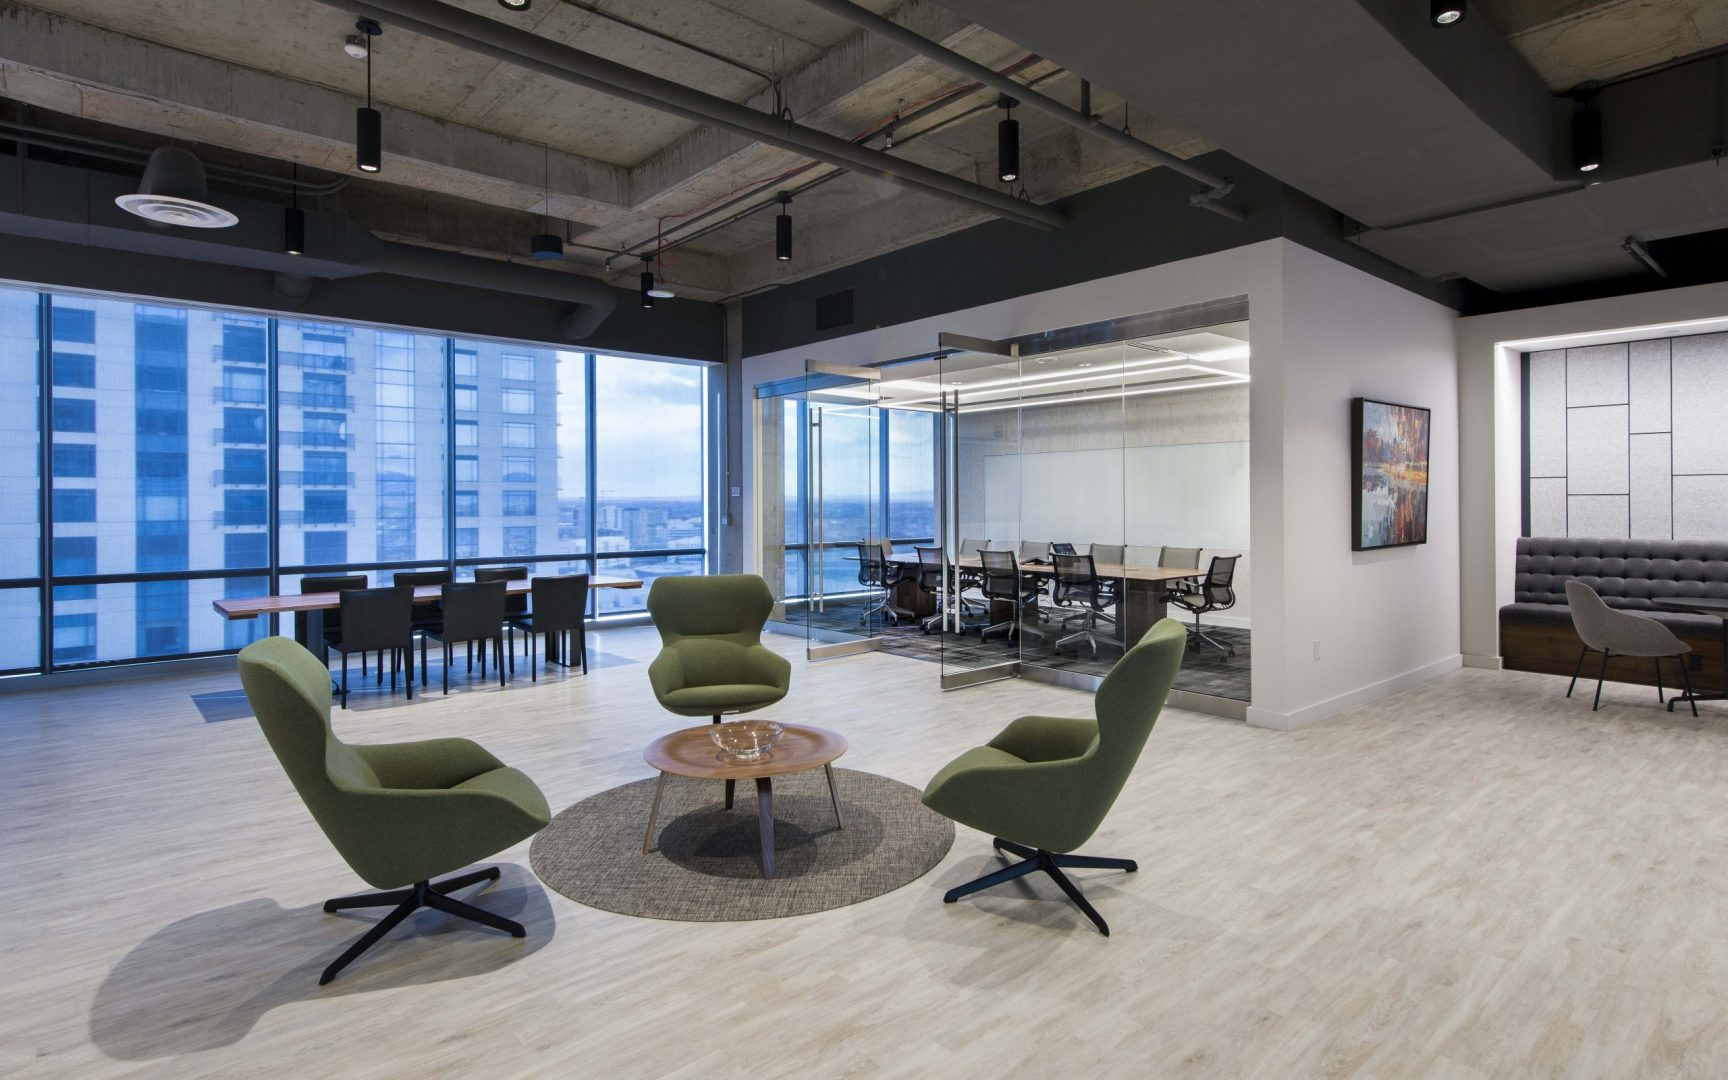 Investment Management Company Denver Corporate Interior Design Seating Group